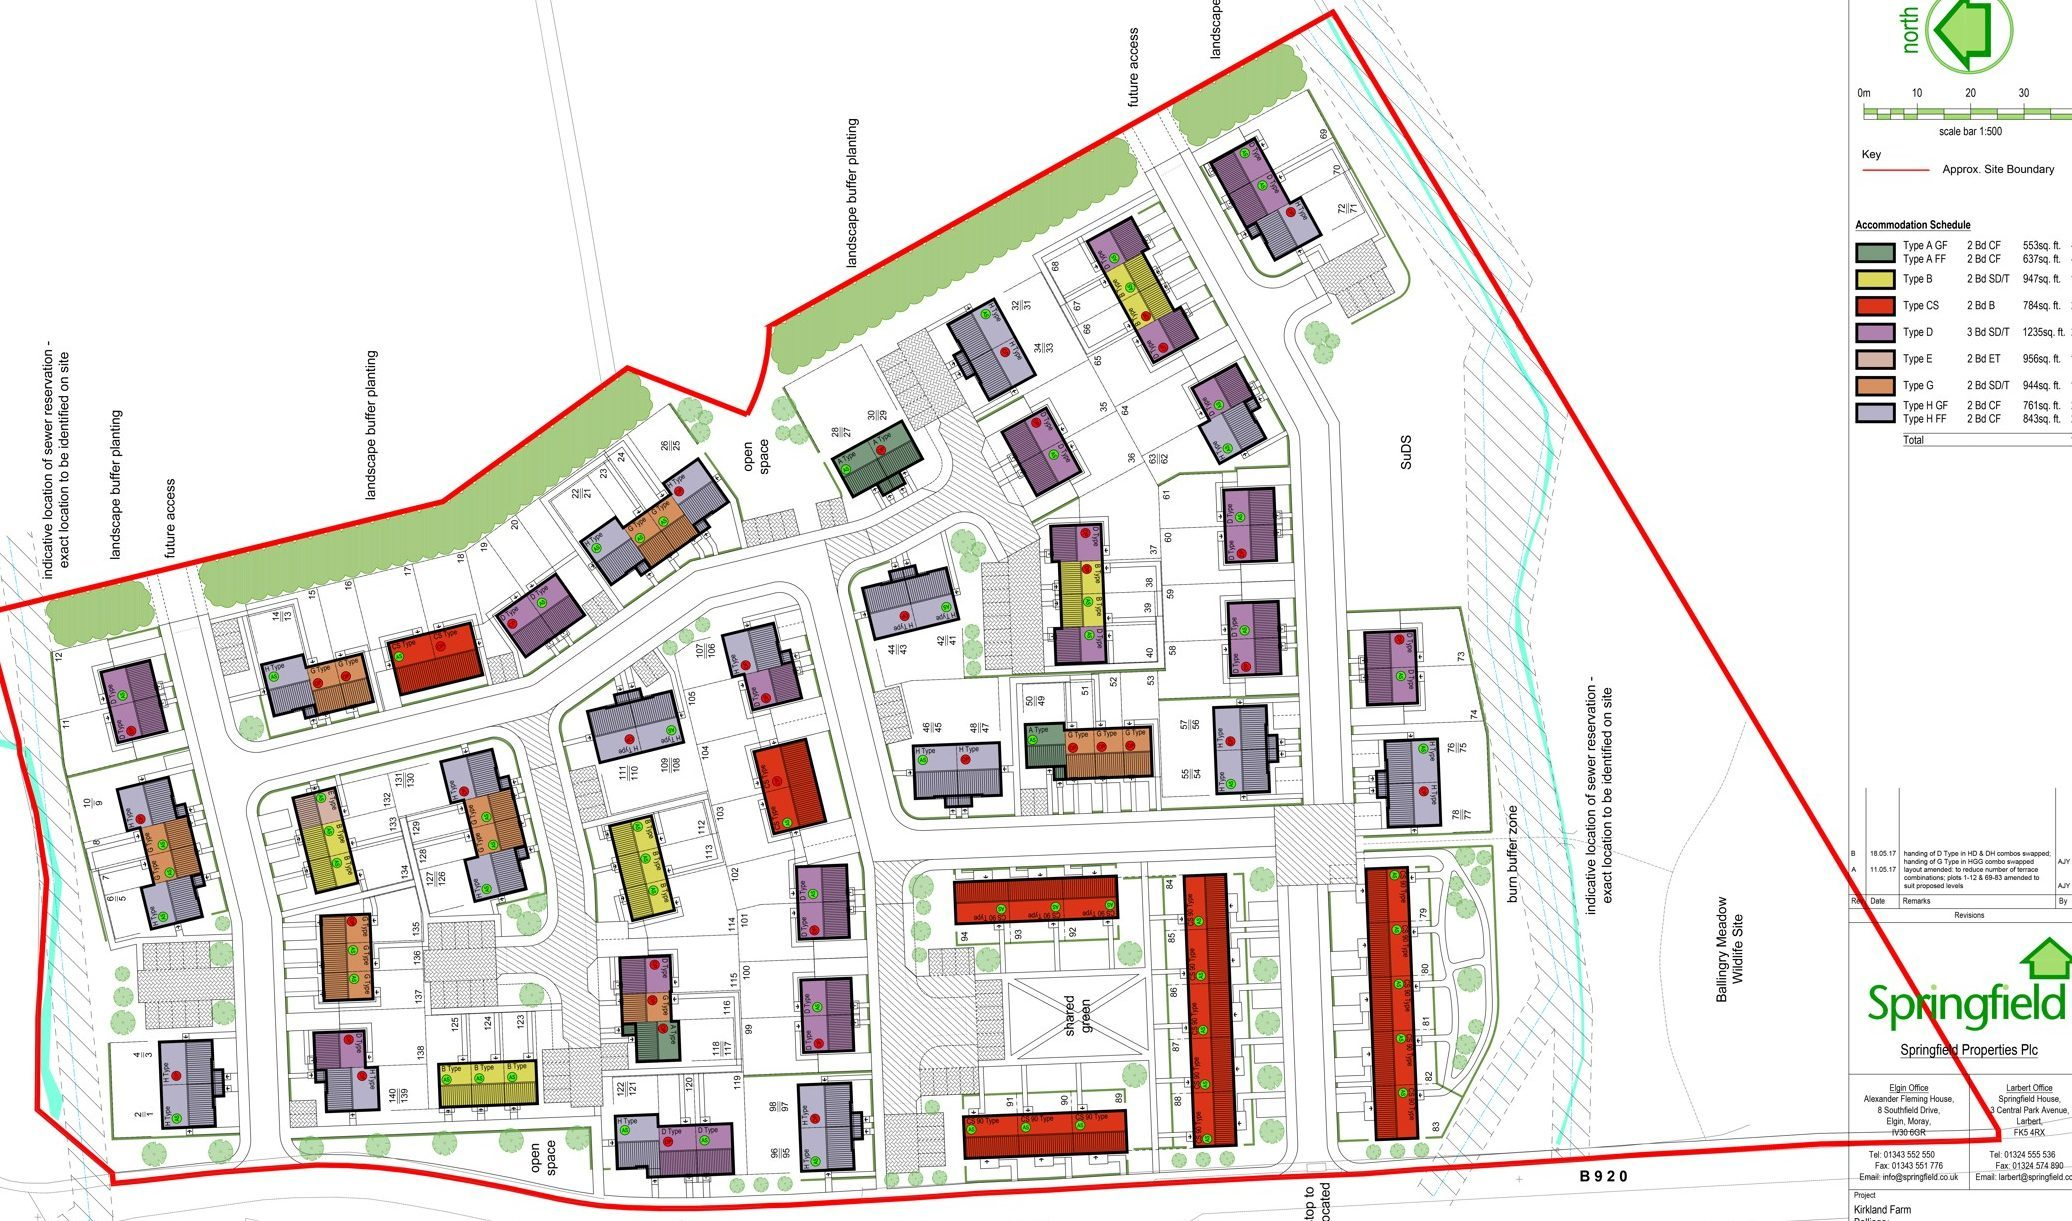 Some 140 homes could be built